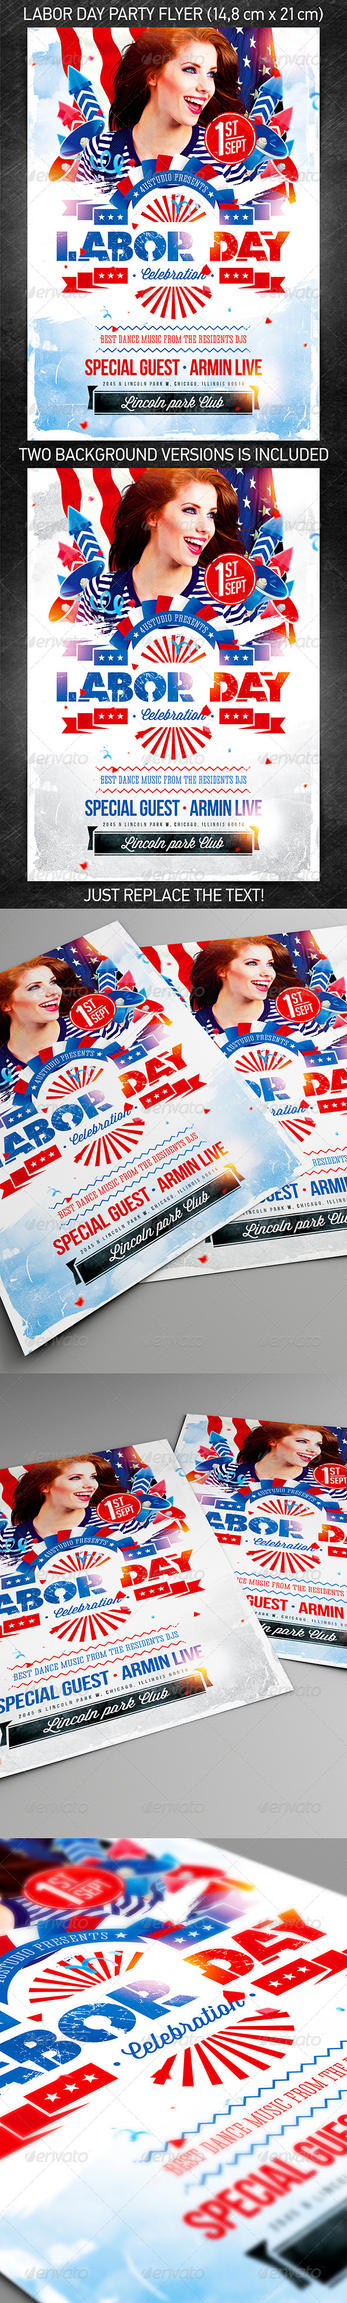 Labor Day Party Flyer vol.2, PSD Template by 4ustudio